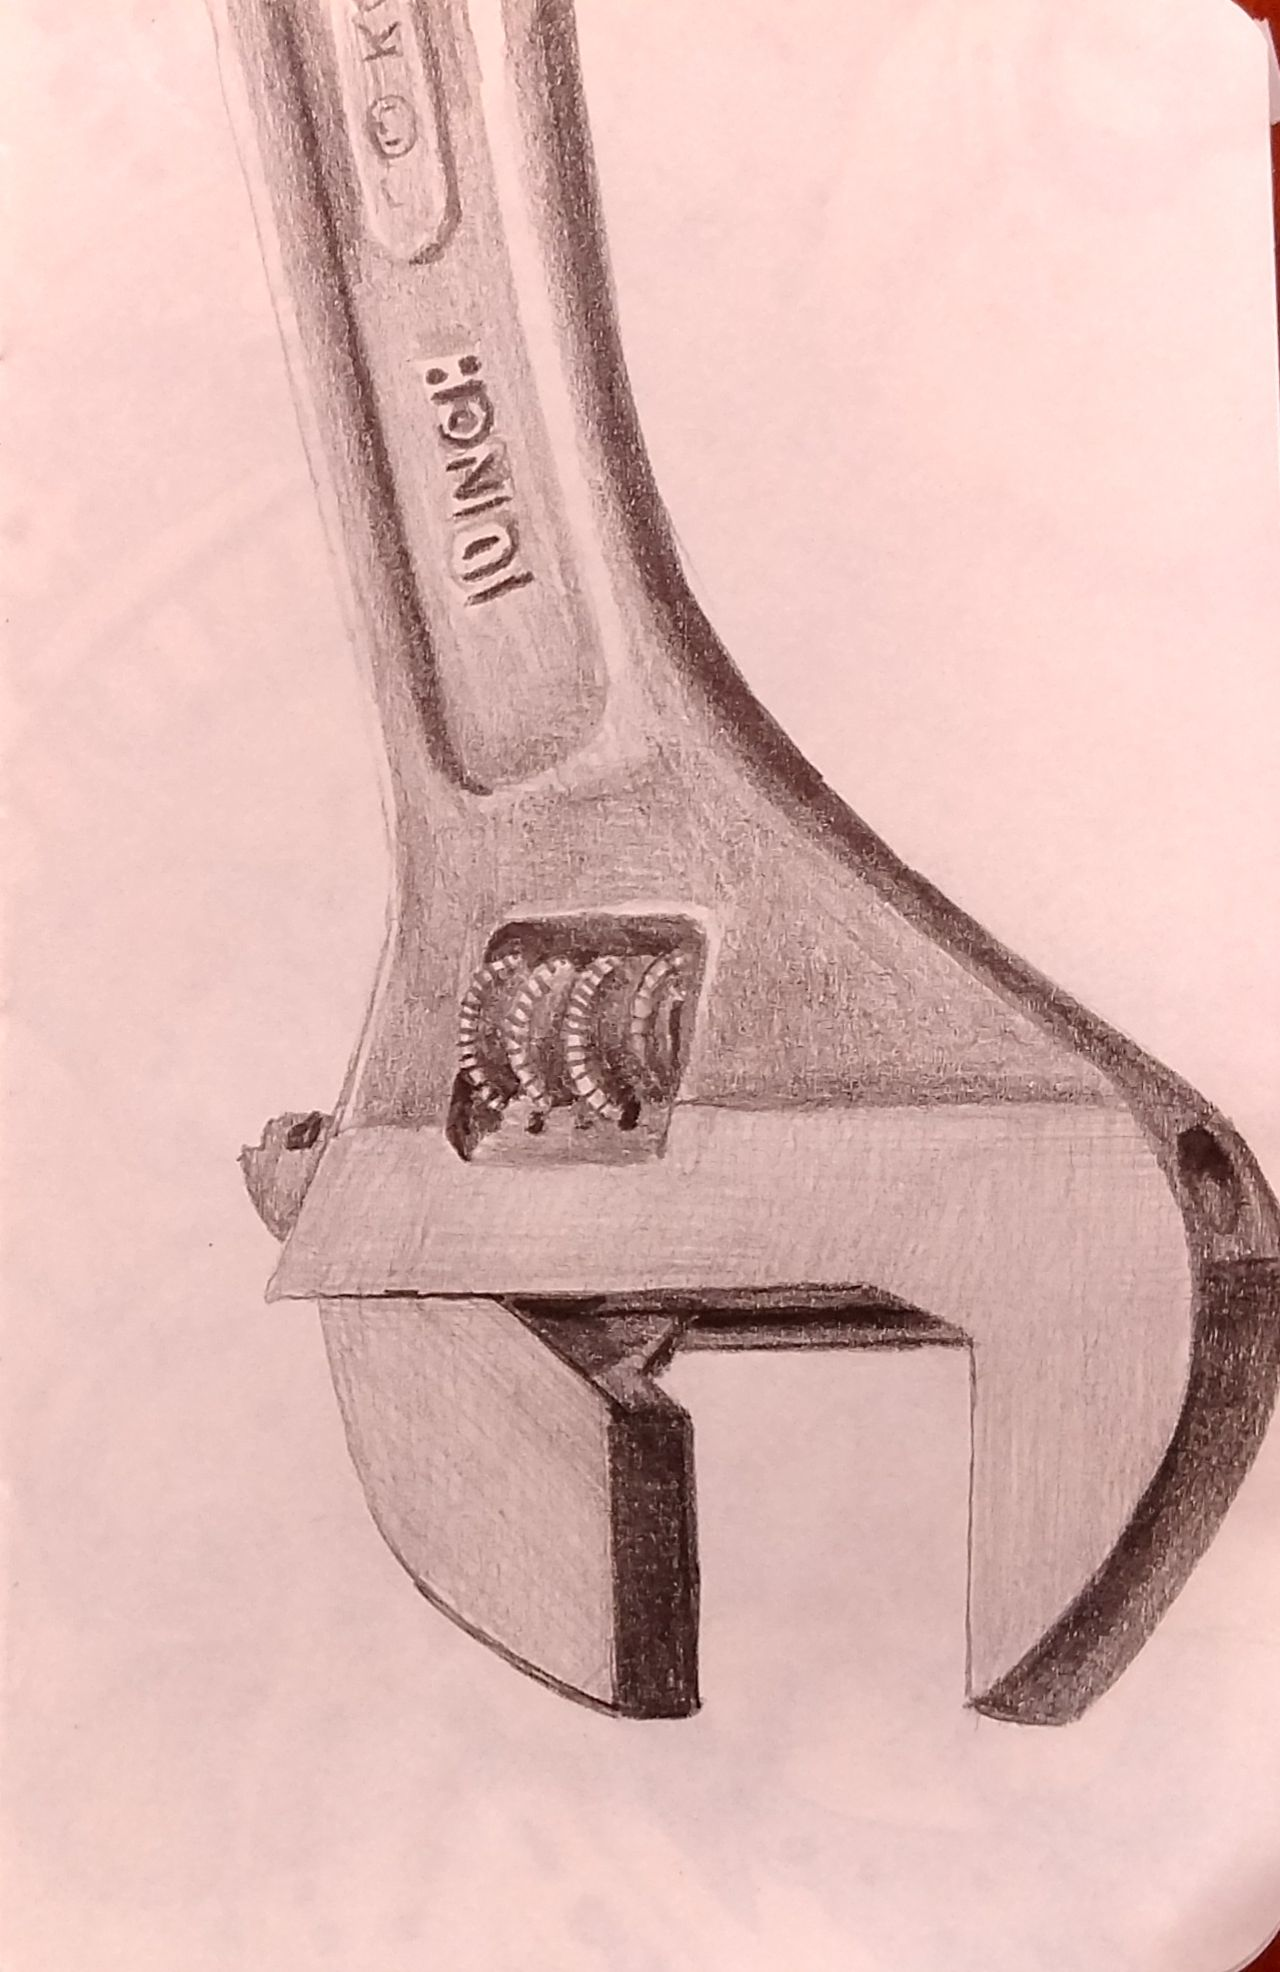 1280x1972 Deanna Williamson, Wrench,5.5 X 3.5, Pencil Drawing, 2017